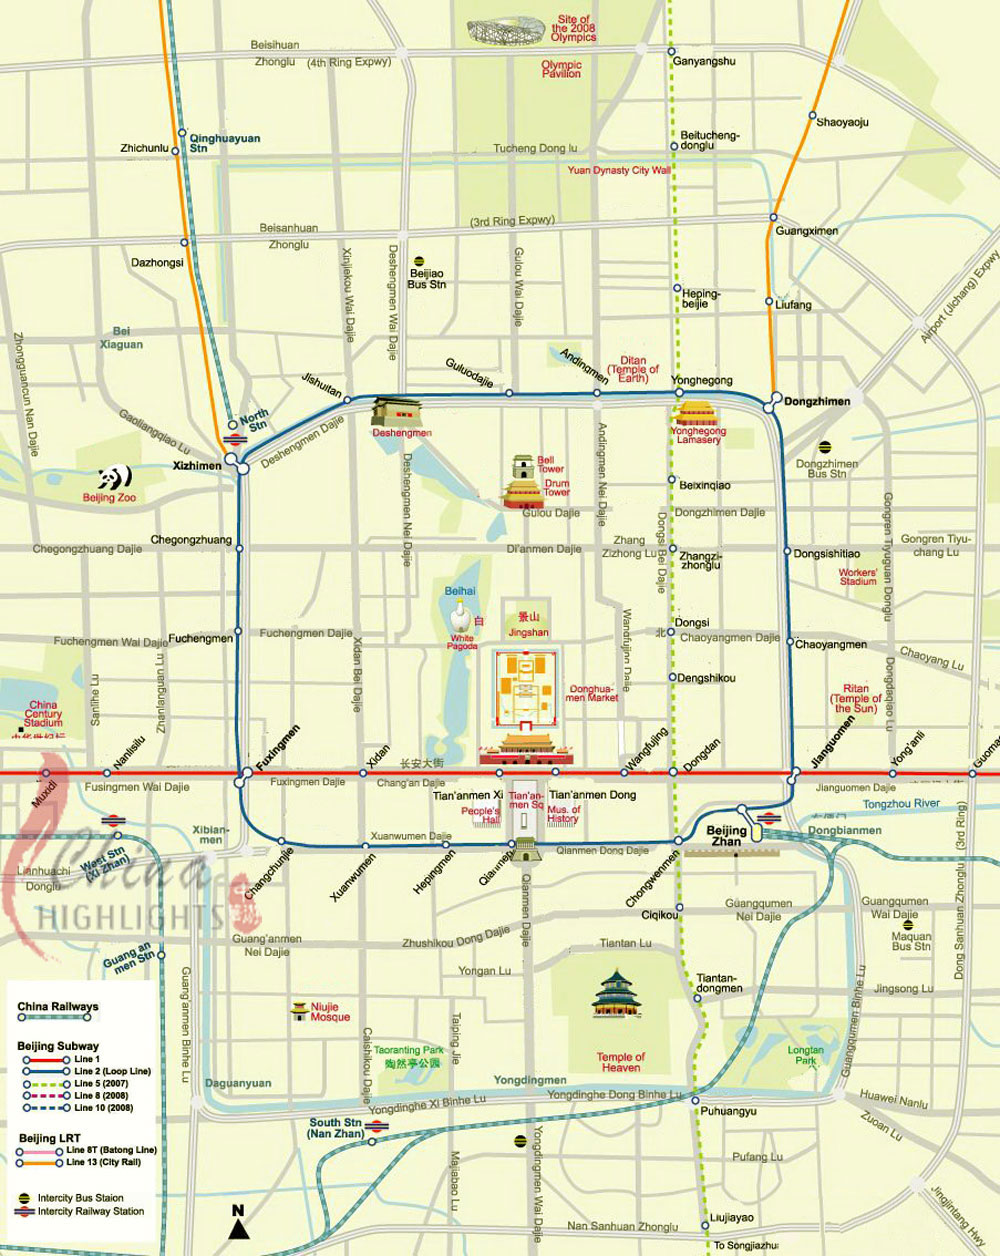 Beijing City Center Map Beijing mappery